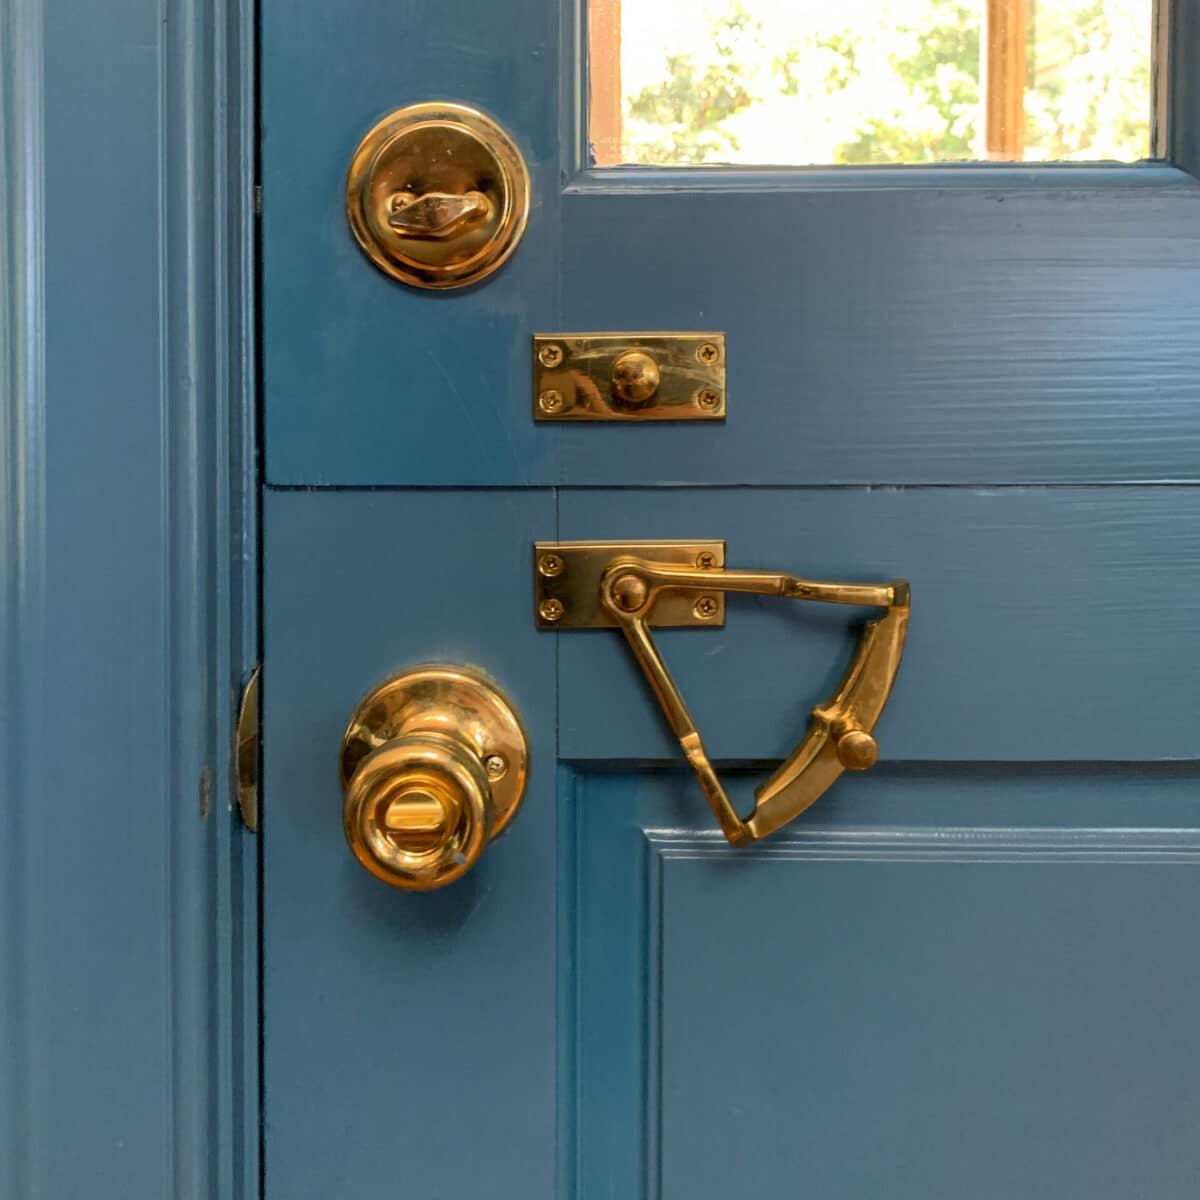 Here is the brass quadrant dutch door hardware closed and in the unlocked position.